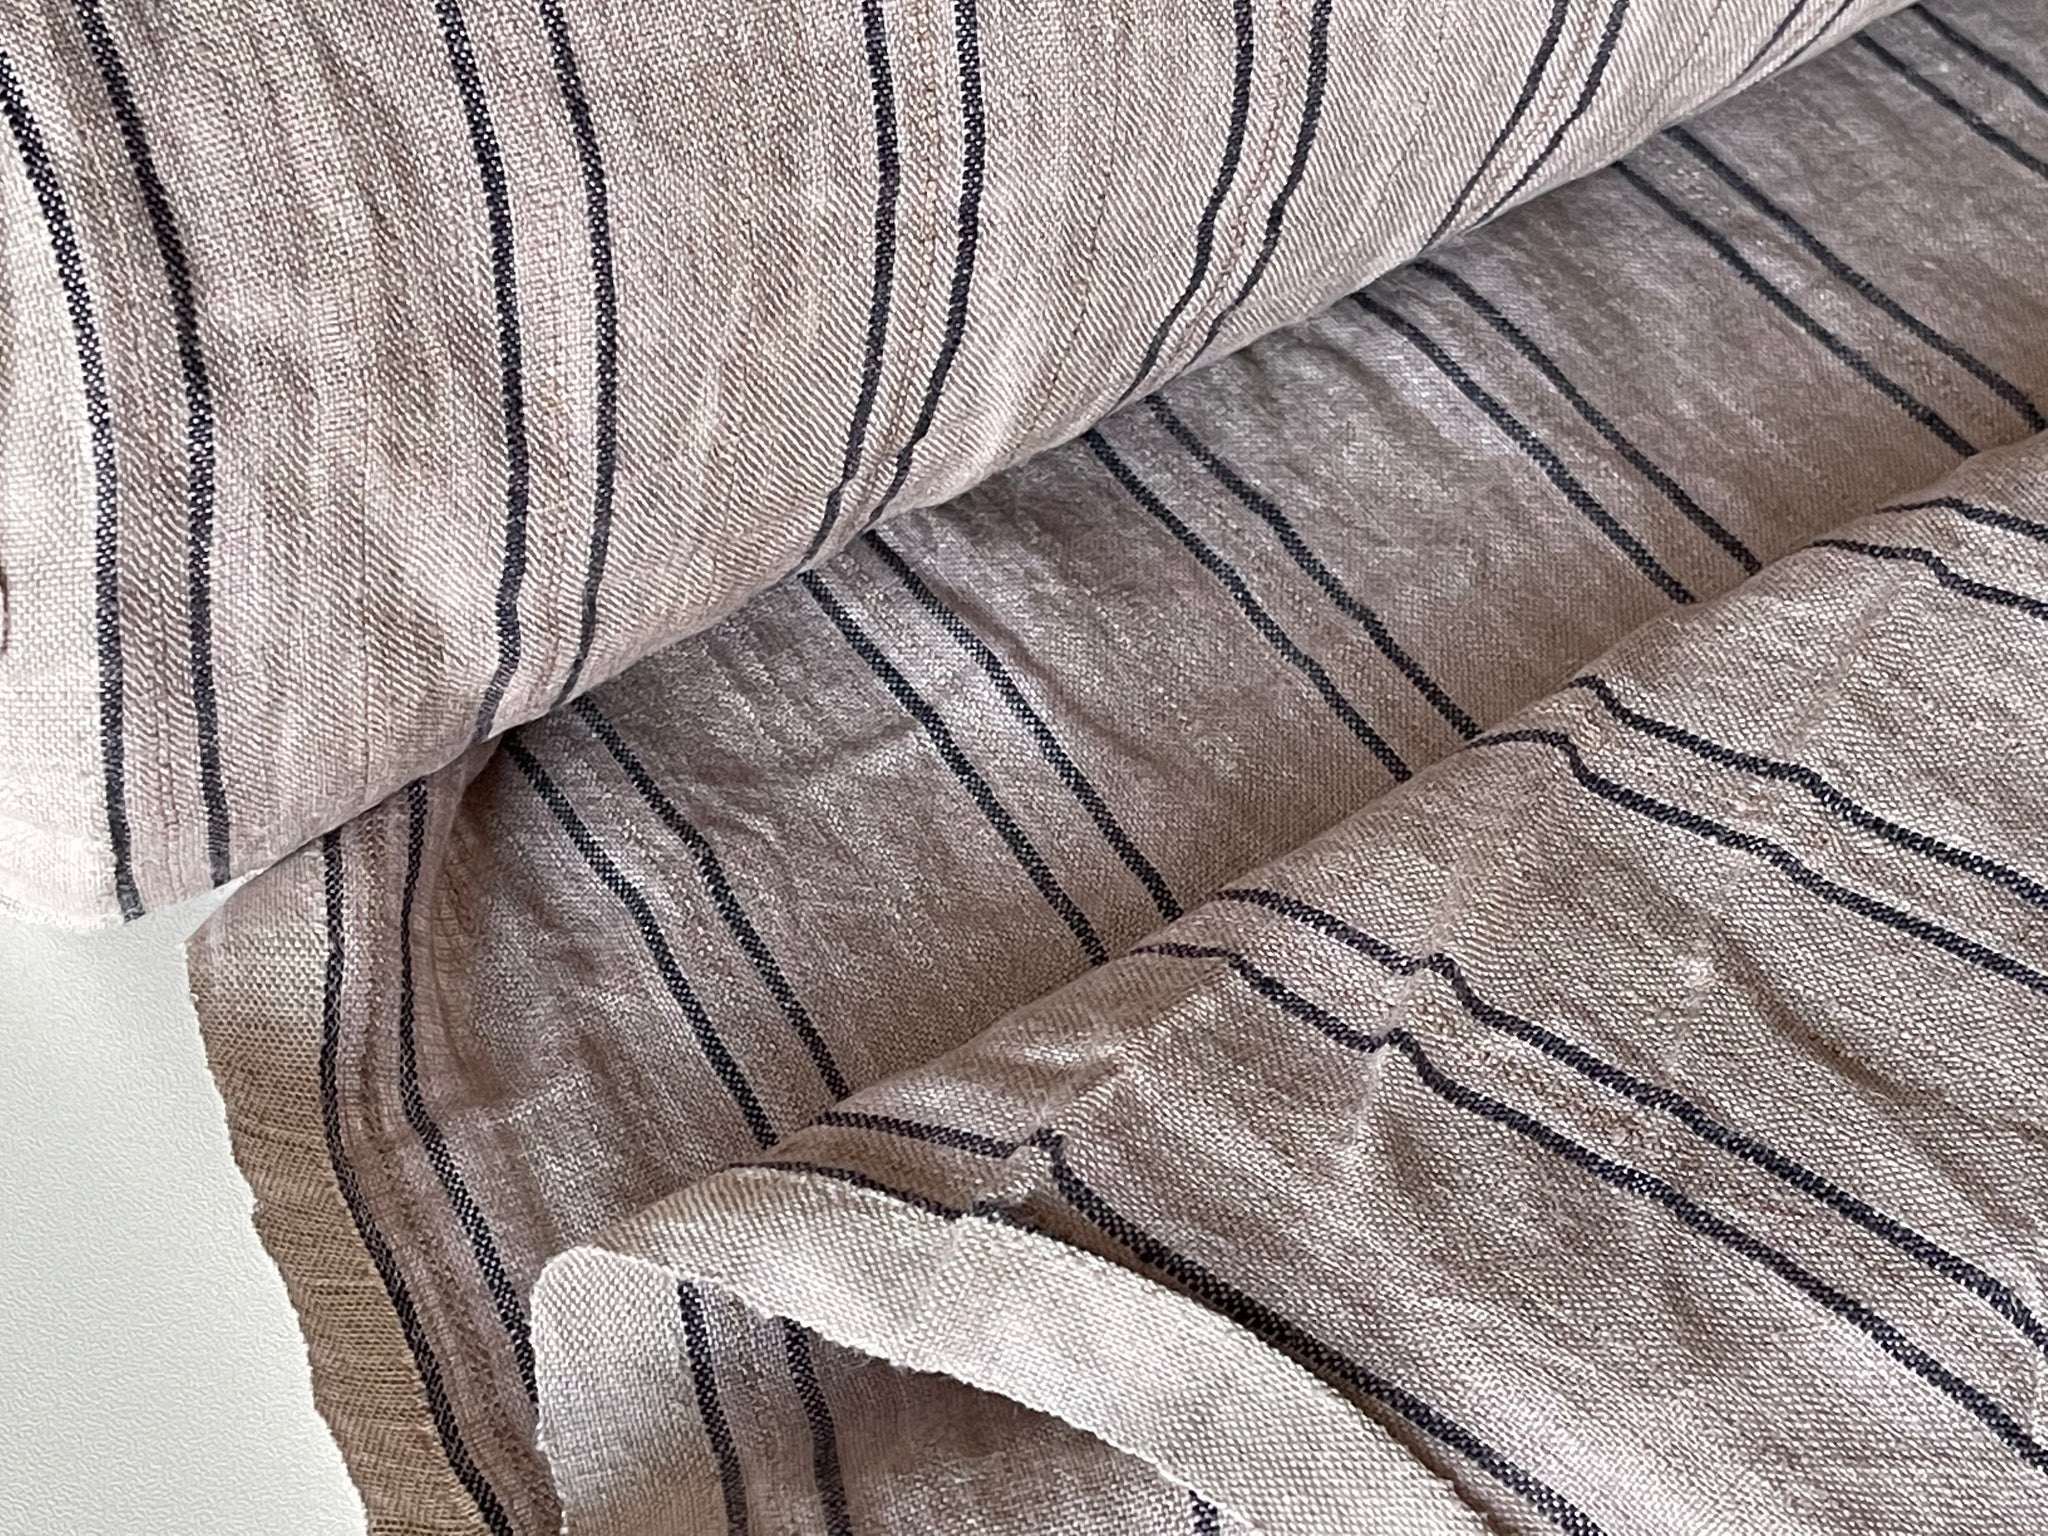 Mocca Stripes Linen Fabric - Stone Washed Super Soft